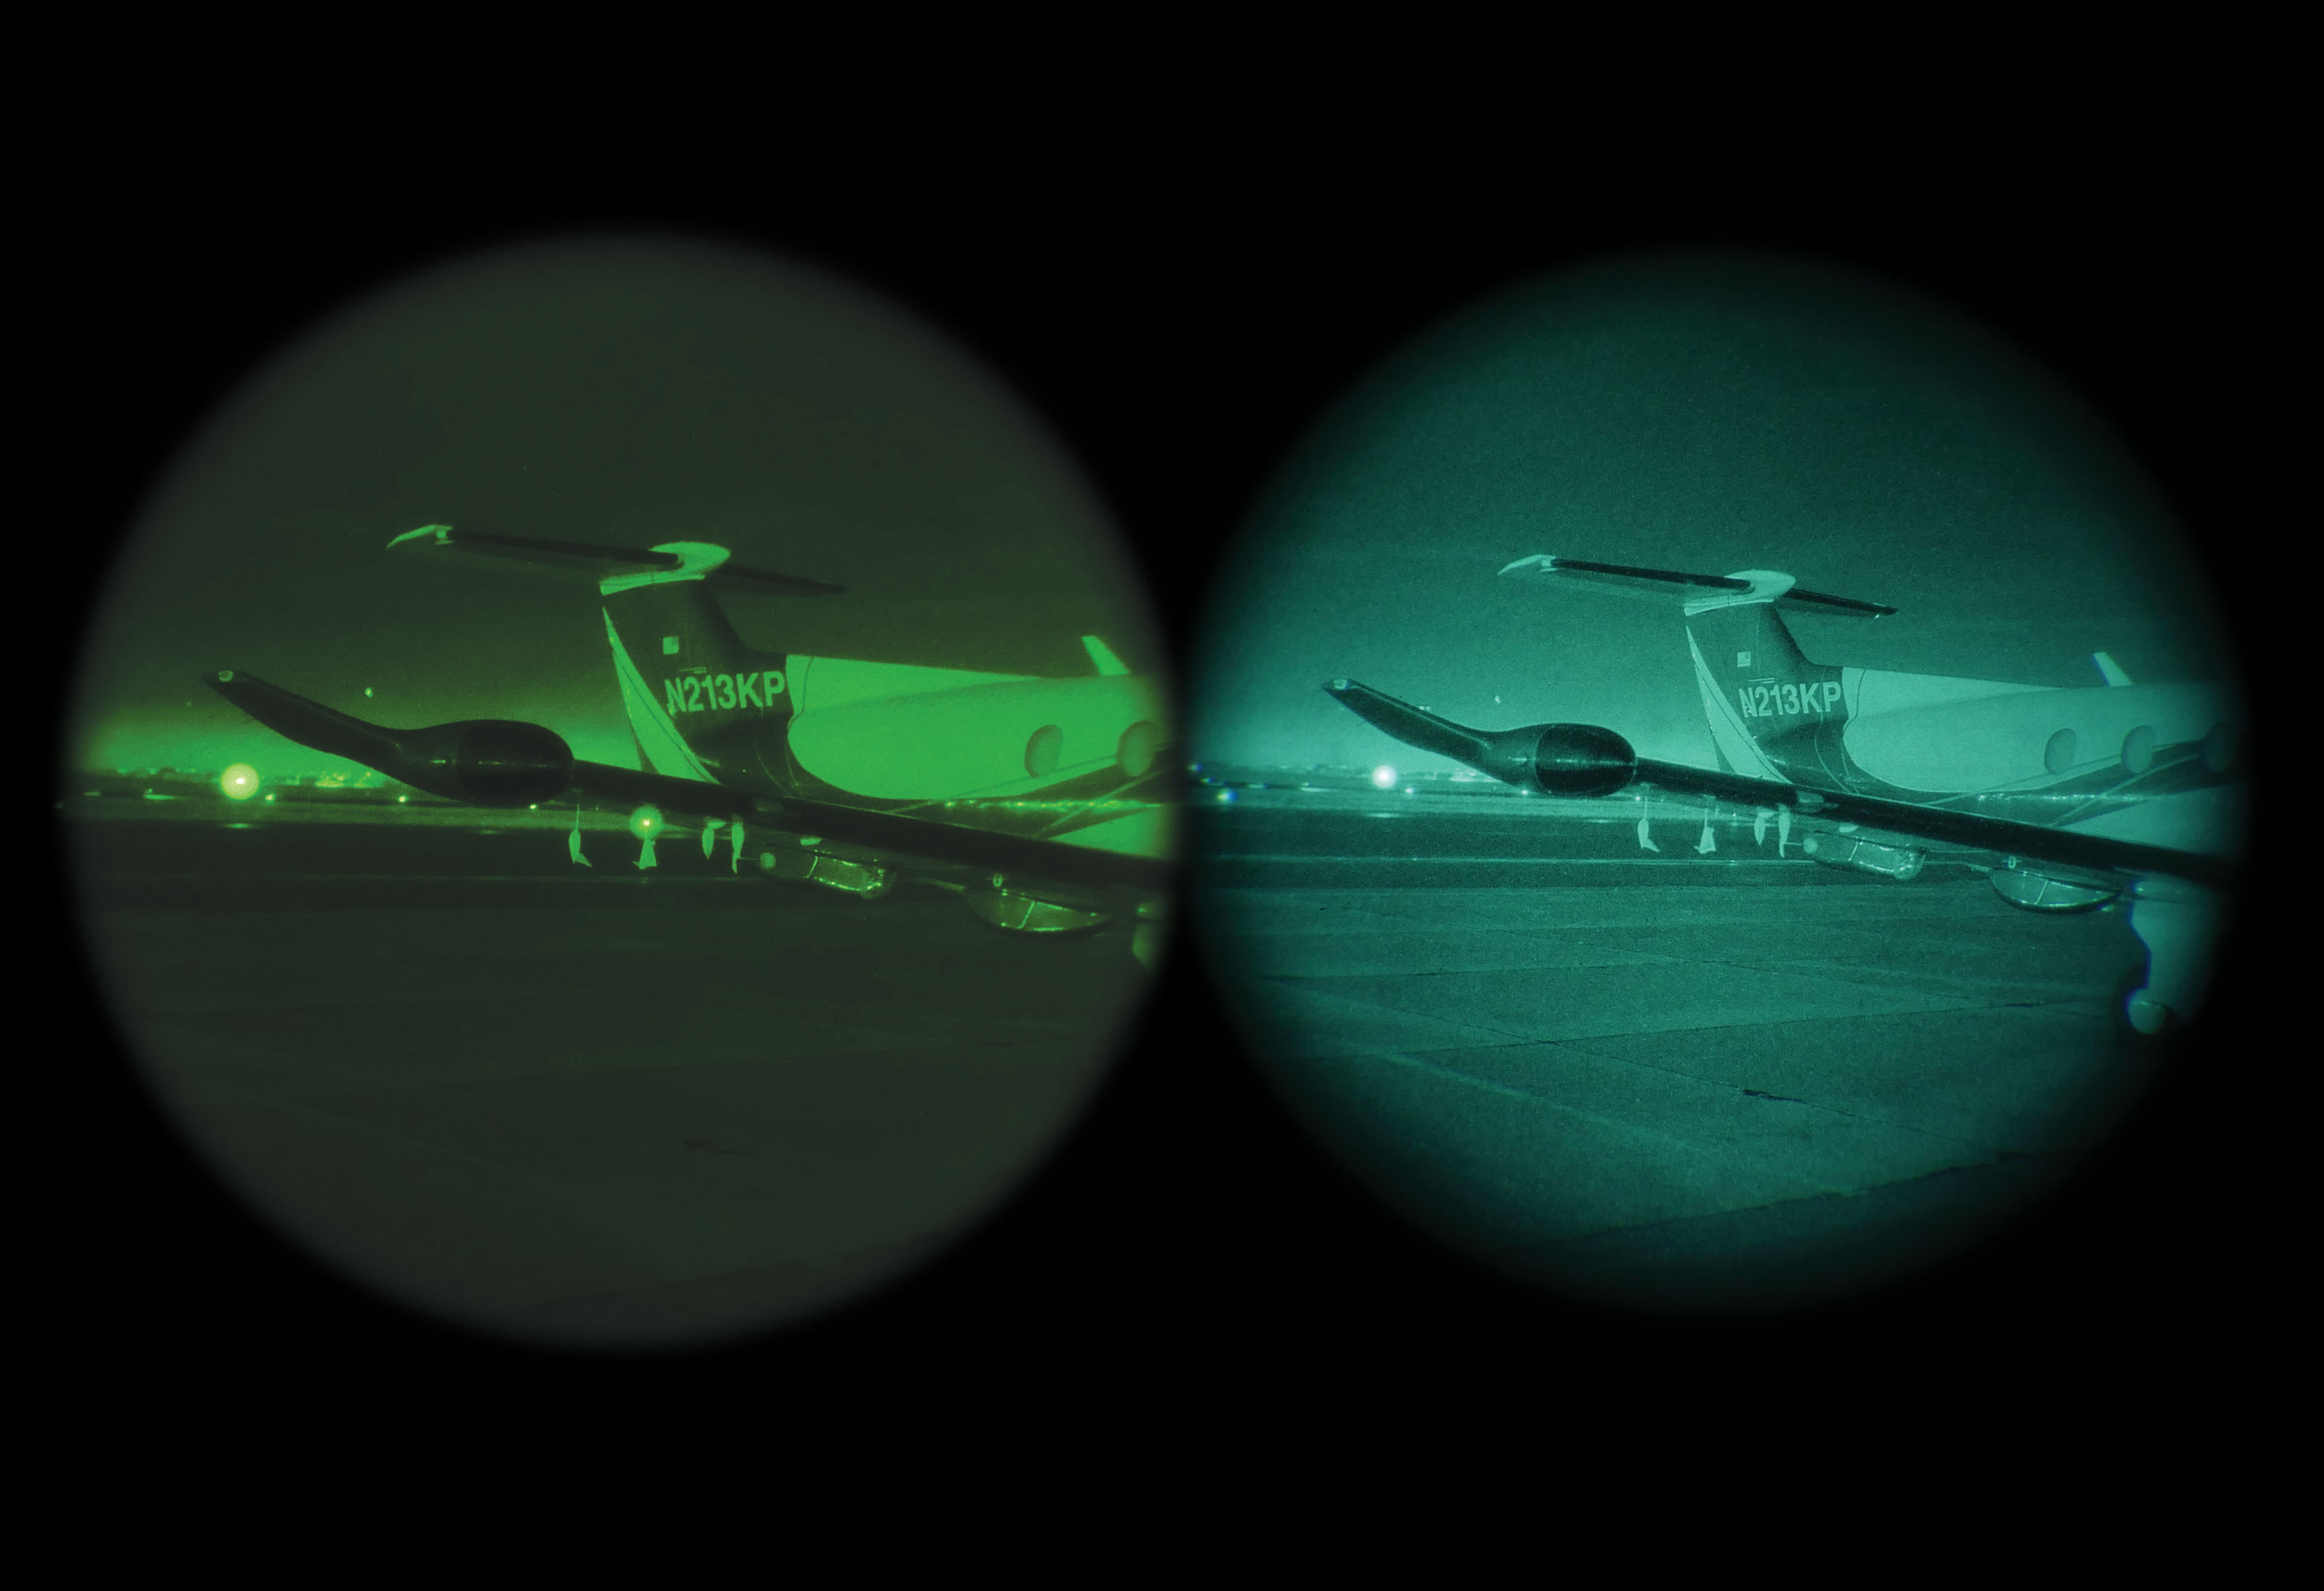 White Phosphor Nvgs Now Available For Civil Aviation